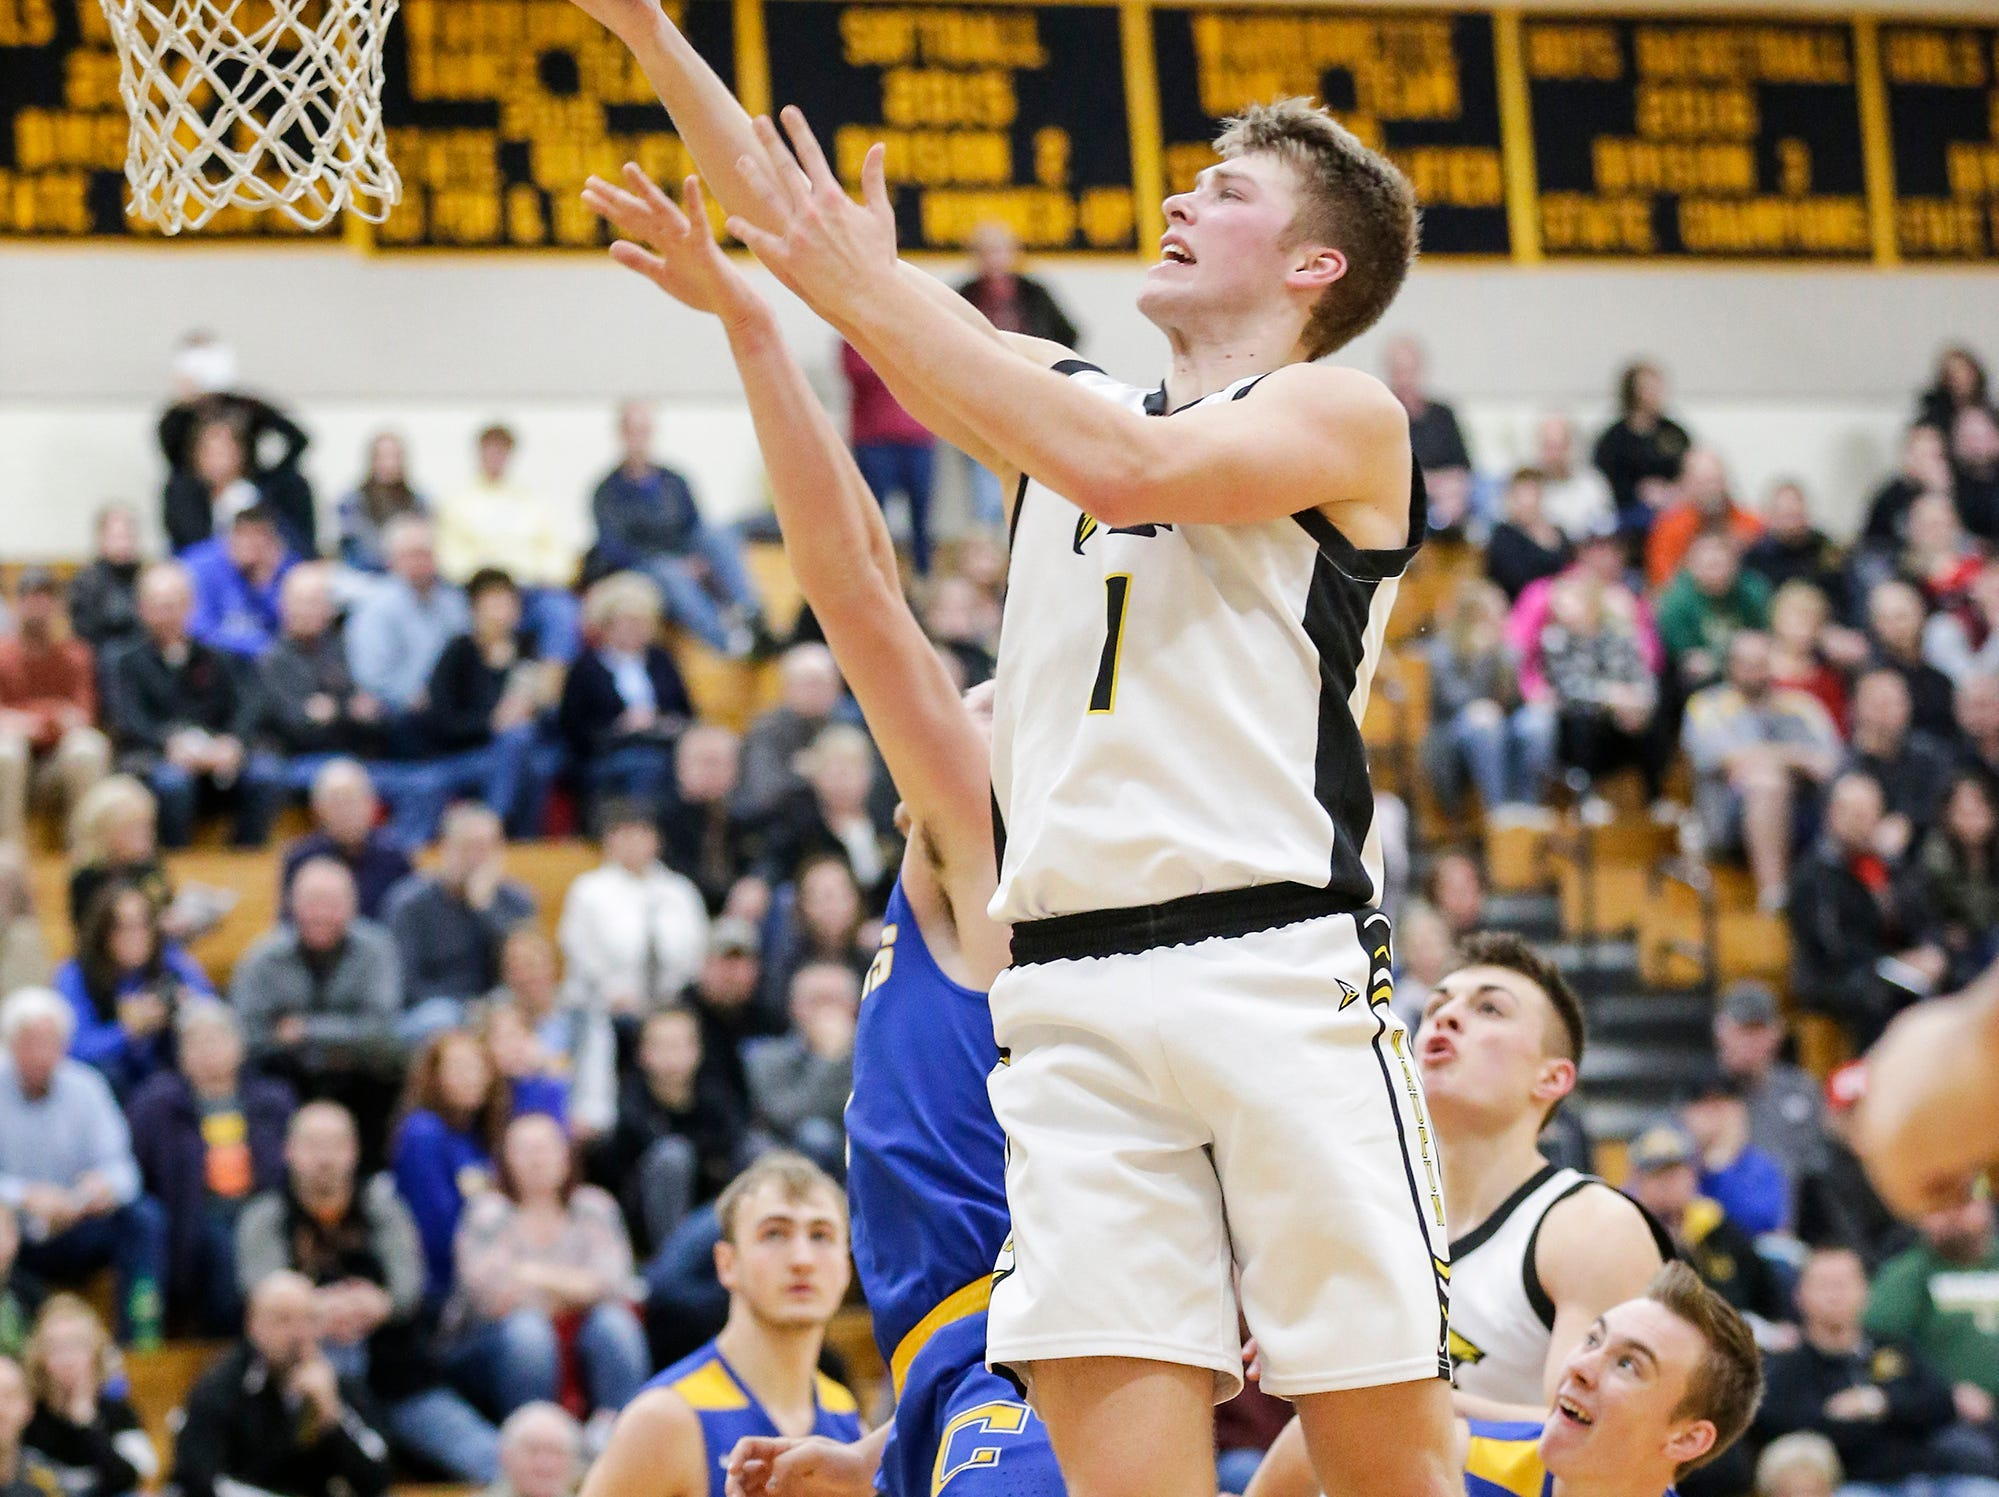 Waupun High School boys basketball's Marcus Domask goes up for a basket against Campbellsport High School during their game Friday, December 14, 2018 in Waupun. Waupun won the game 64-33. Doug Raflik/USA TODAY NETWORK-Wisconsin